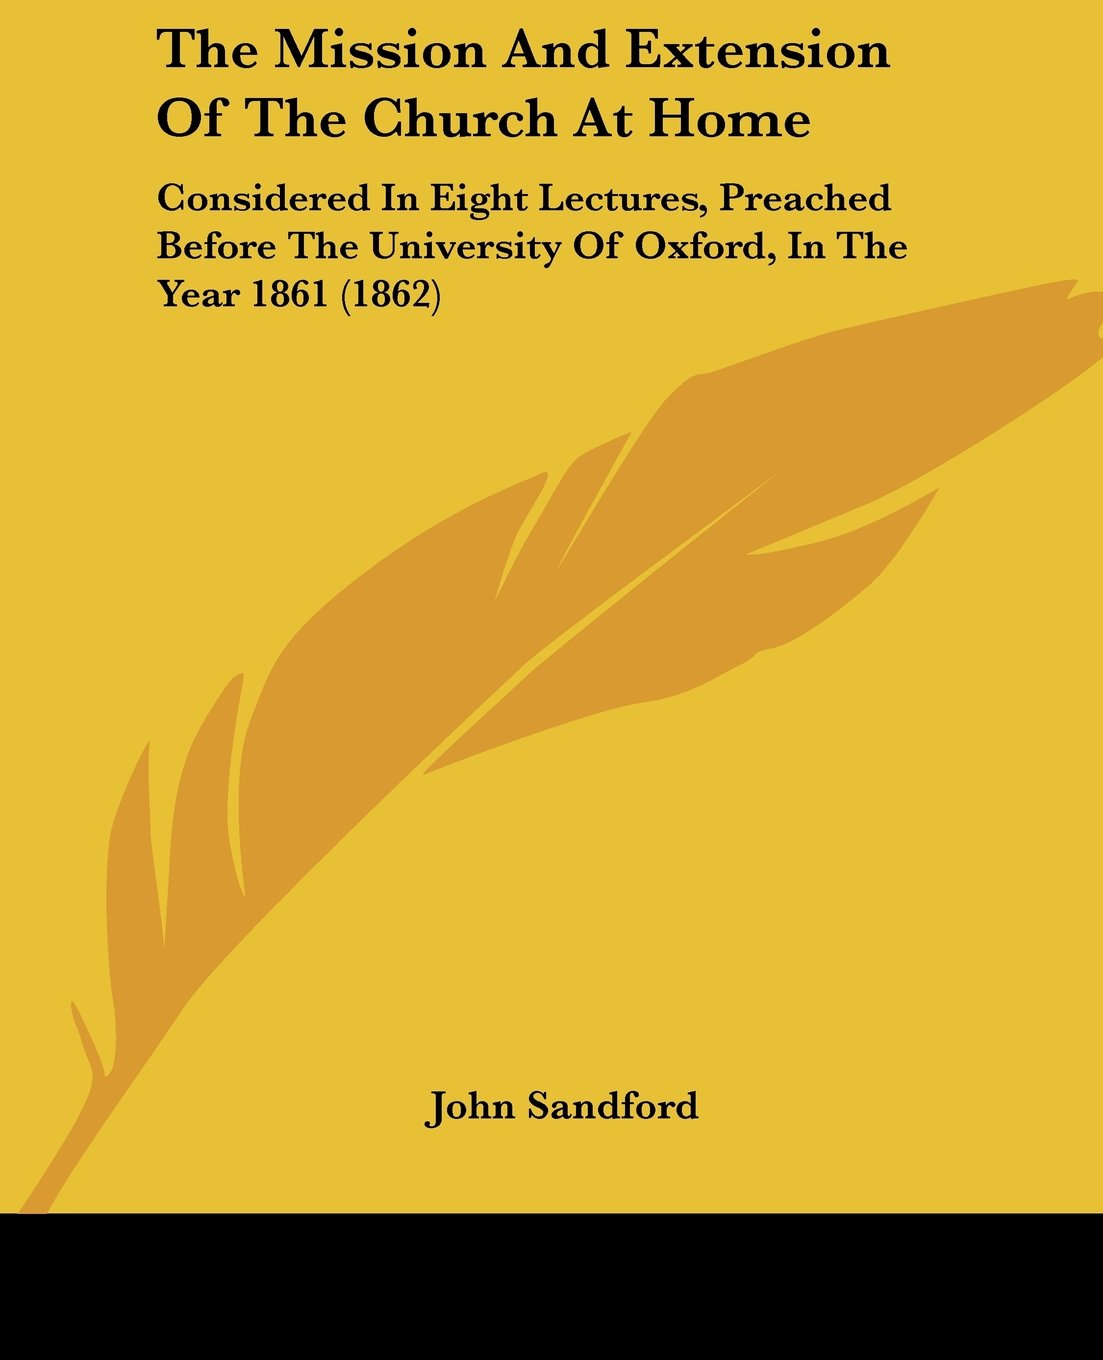 The Mission And Extension Of The Church At Home: Considered In Eight Lectures, Preached Before The University Of Oxford, In The Year 1861 (1862) pdf